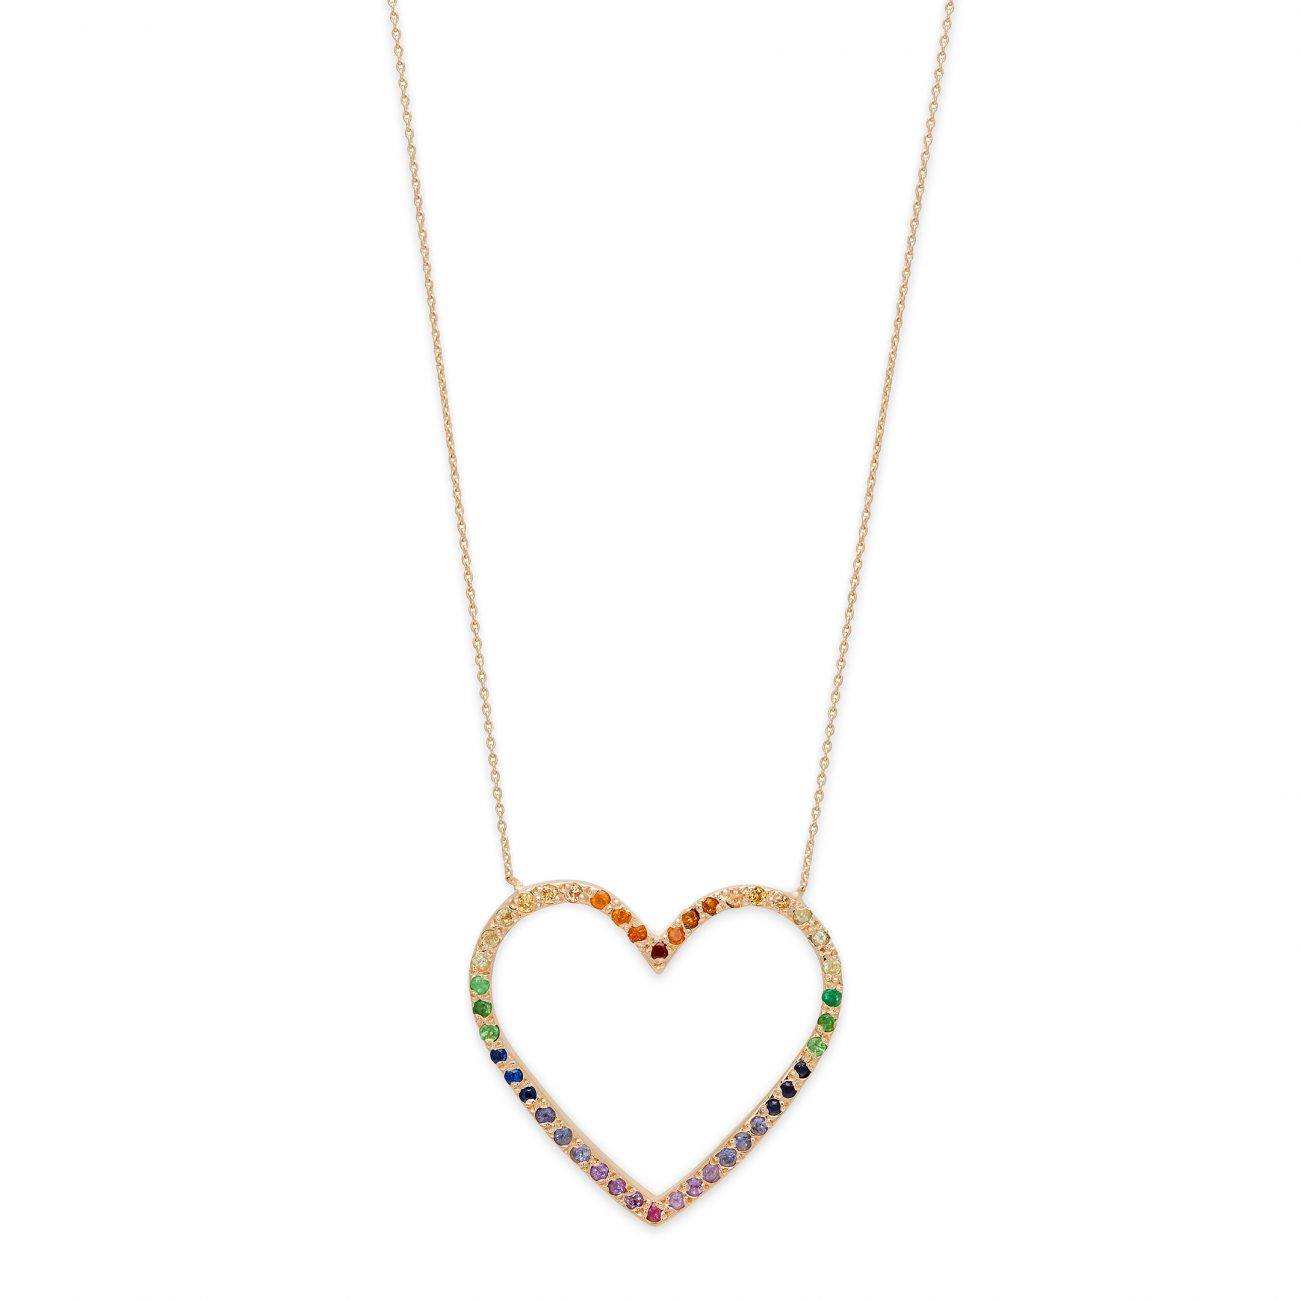 Necklace_LargeRainbowOpenHeart